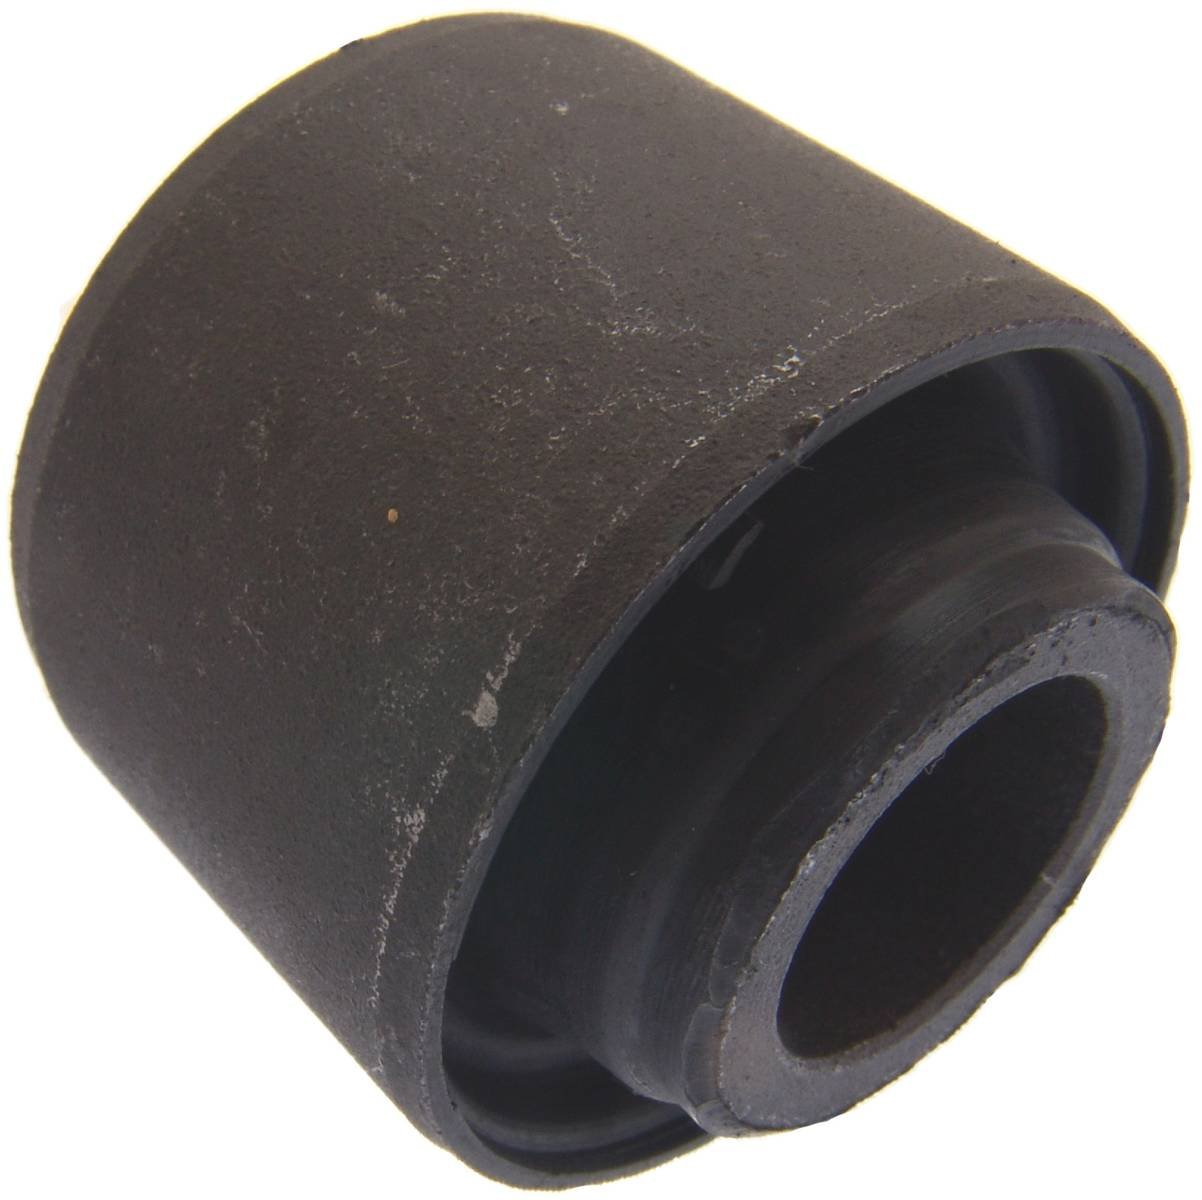 48530-69485 4853069485 Arm Bushing Rear Shock Absorber For Toyota